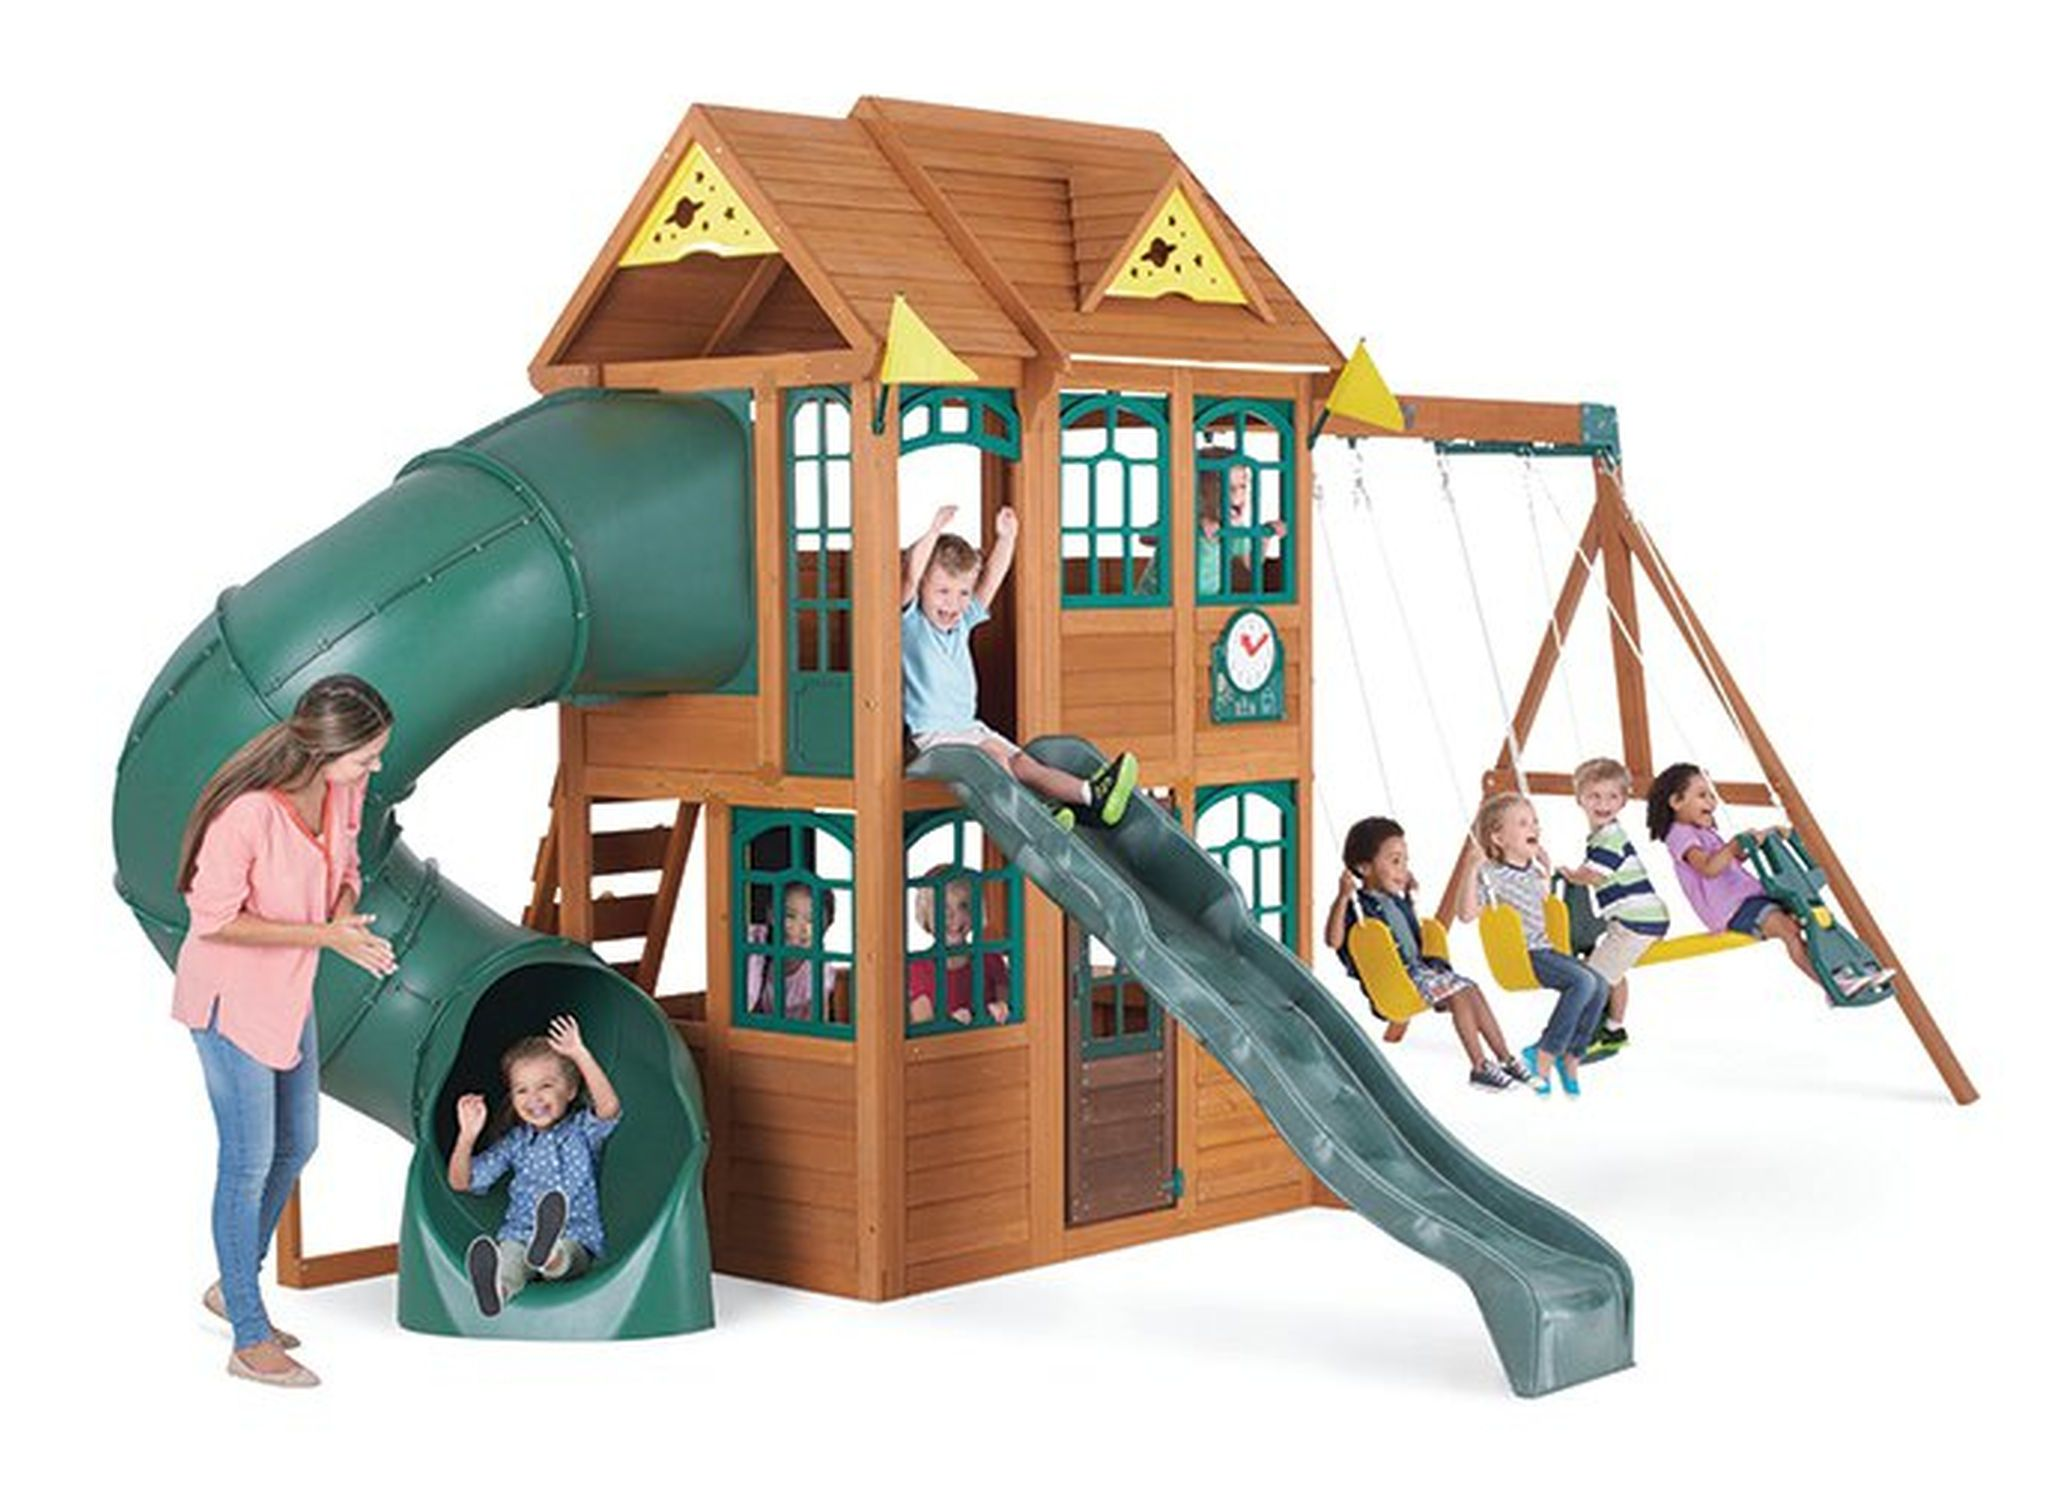 Medium Of Big Backyard Playhouse